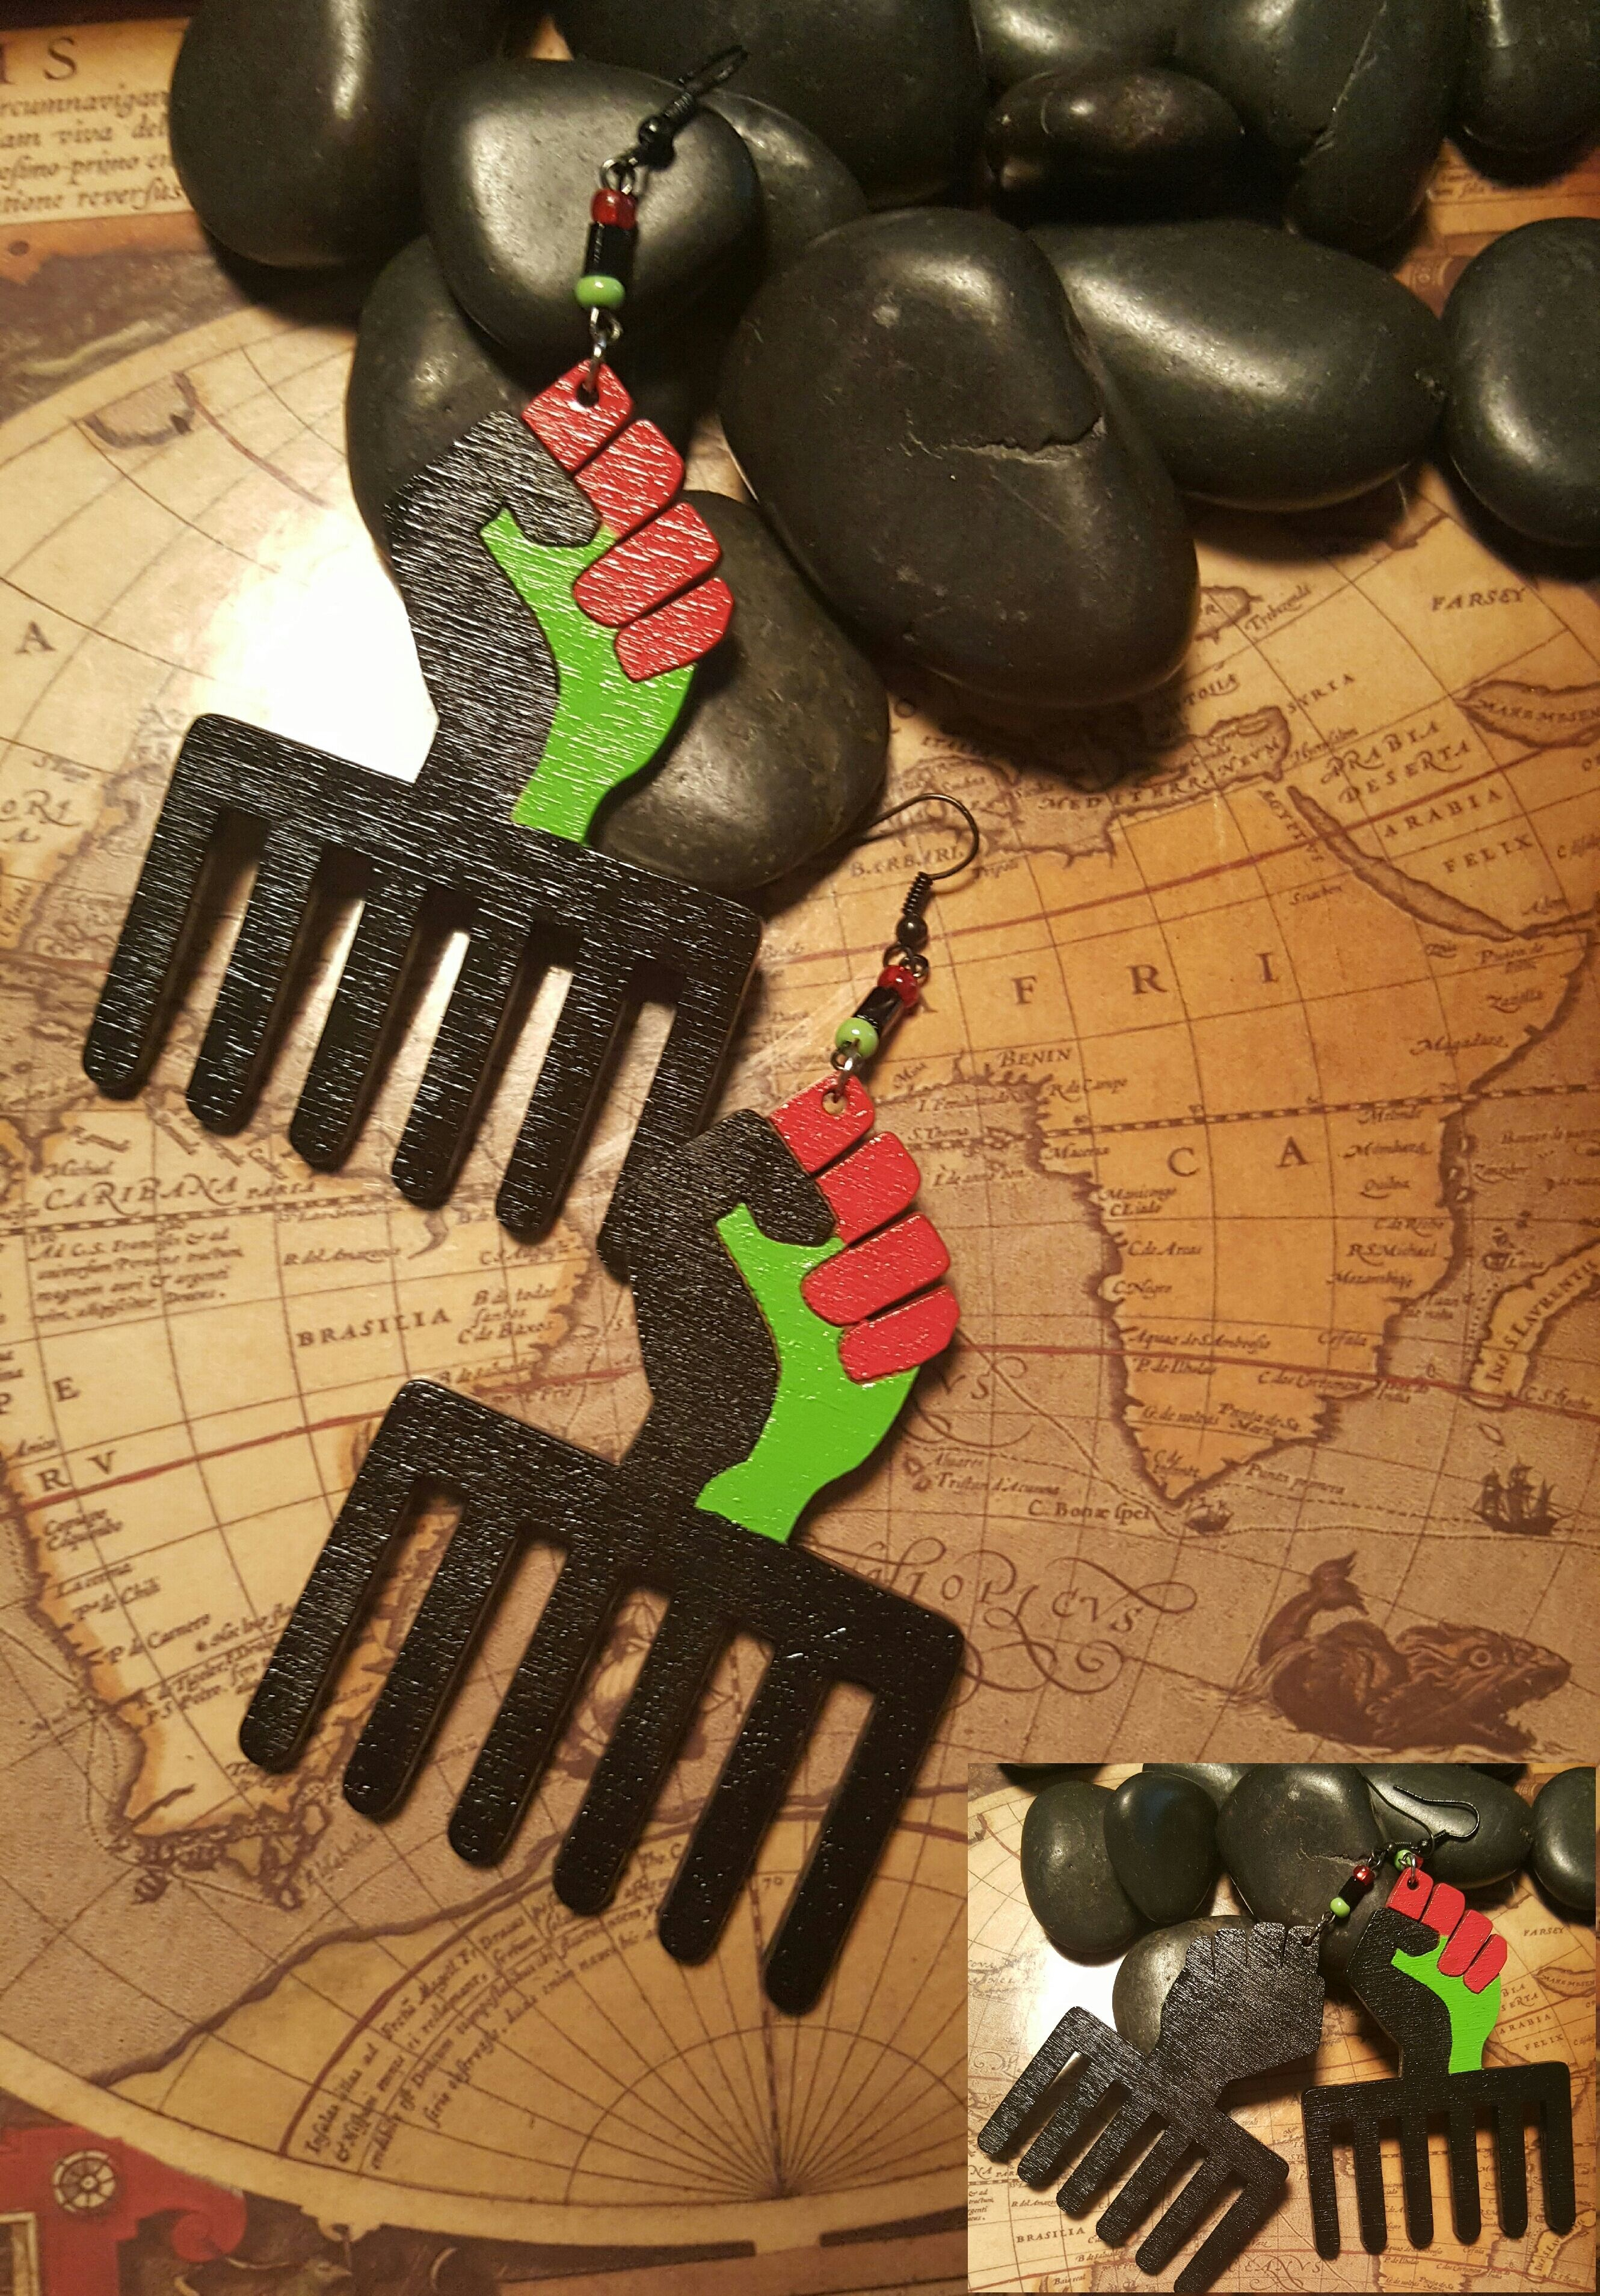 Rock your rbg and bp pride with these power fist and duafe comb 3 x 25 duafe wooden comb symbol of beauty and cleanliness symbols of desirable feminine qualities the meaning biocorpaavc